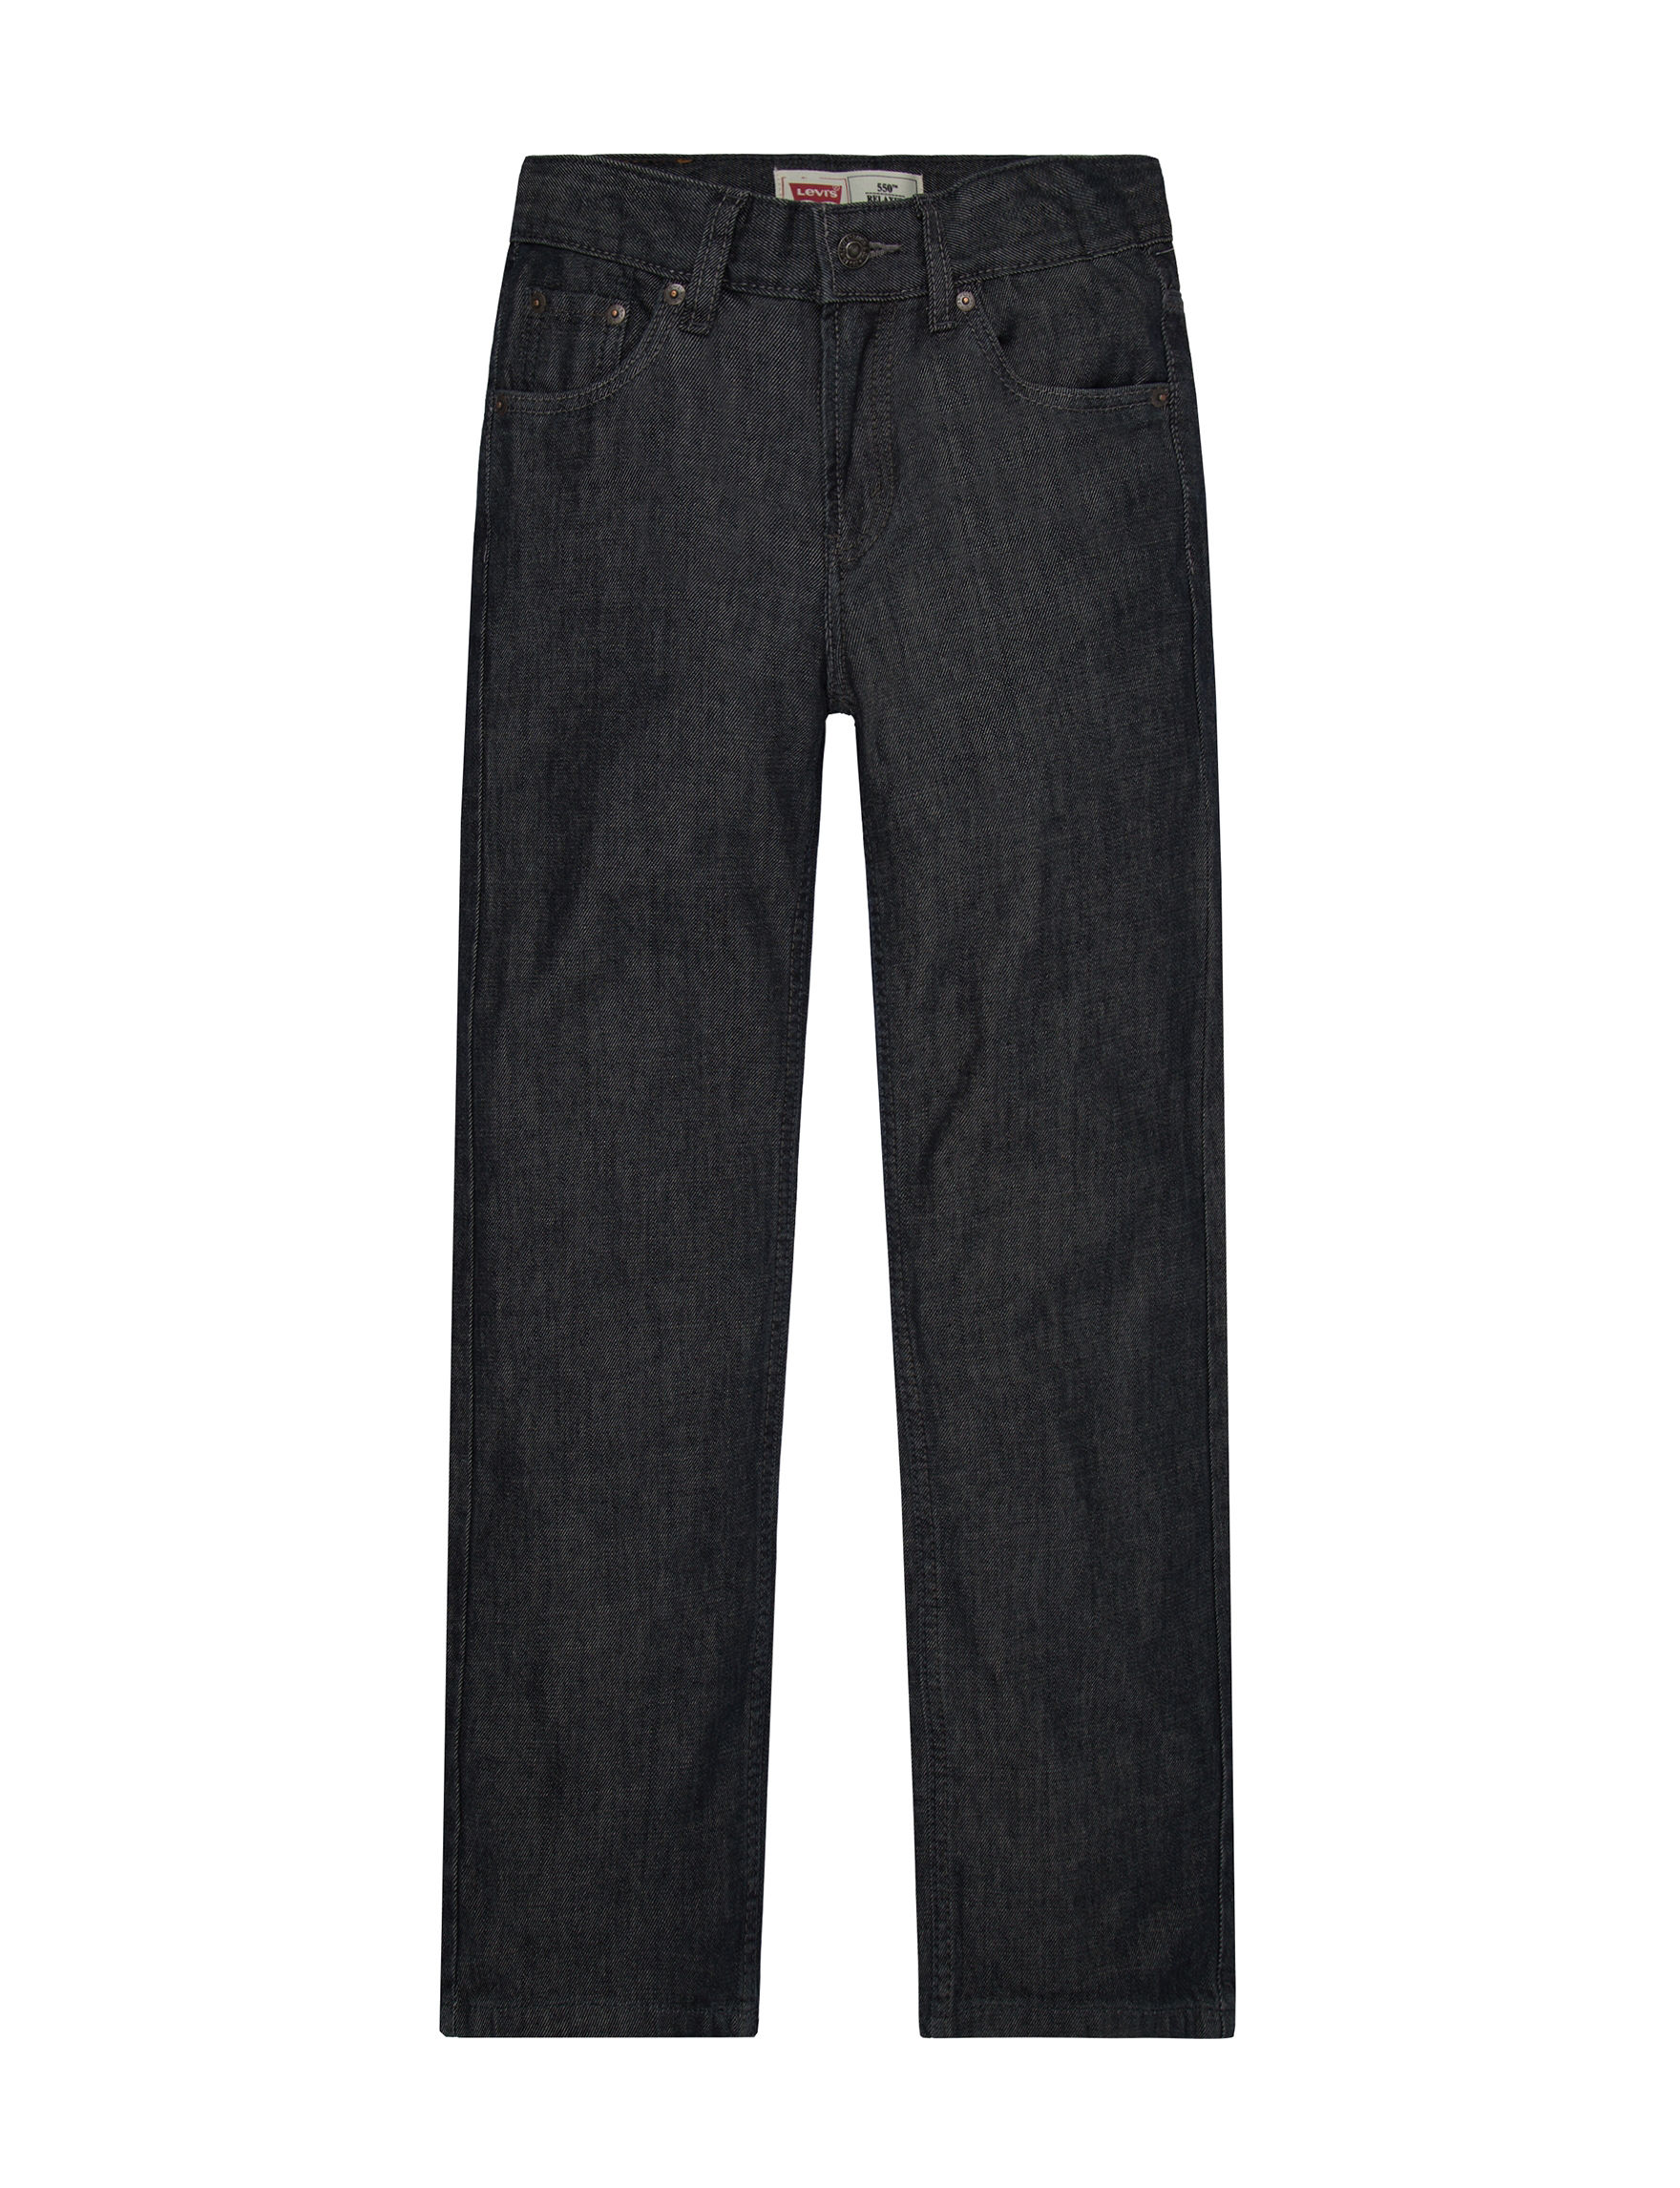 Levi's Navy Relaxed